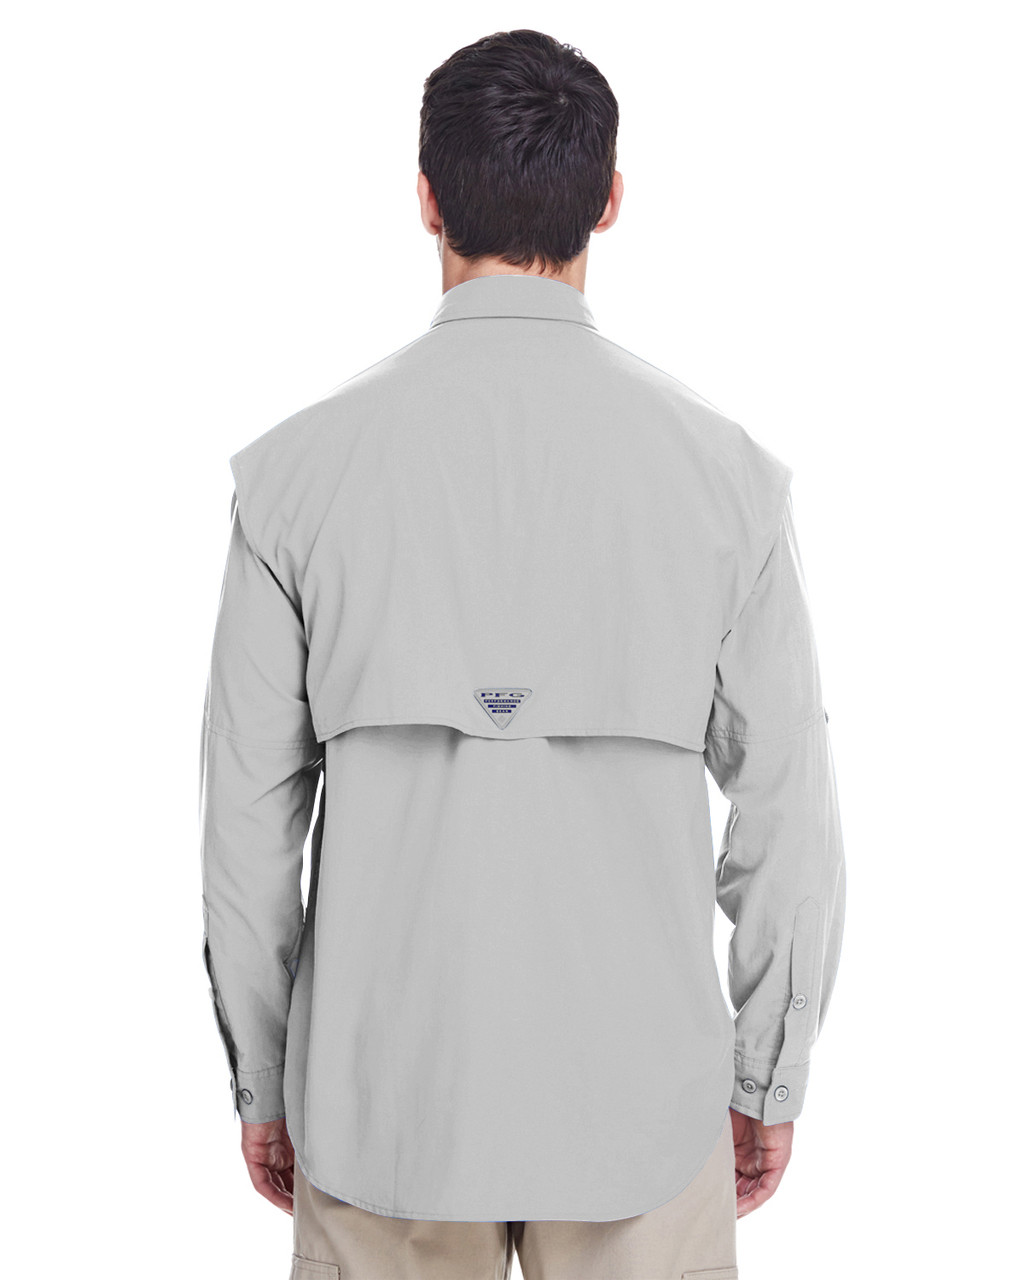 Cool Grey, Back -  7048 Columbia Men's Bahama™ II Long-Sleeve Shirt | BlankCLothing.ca